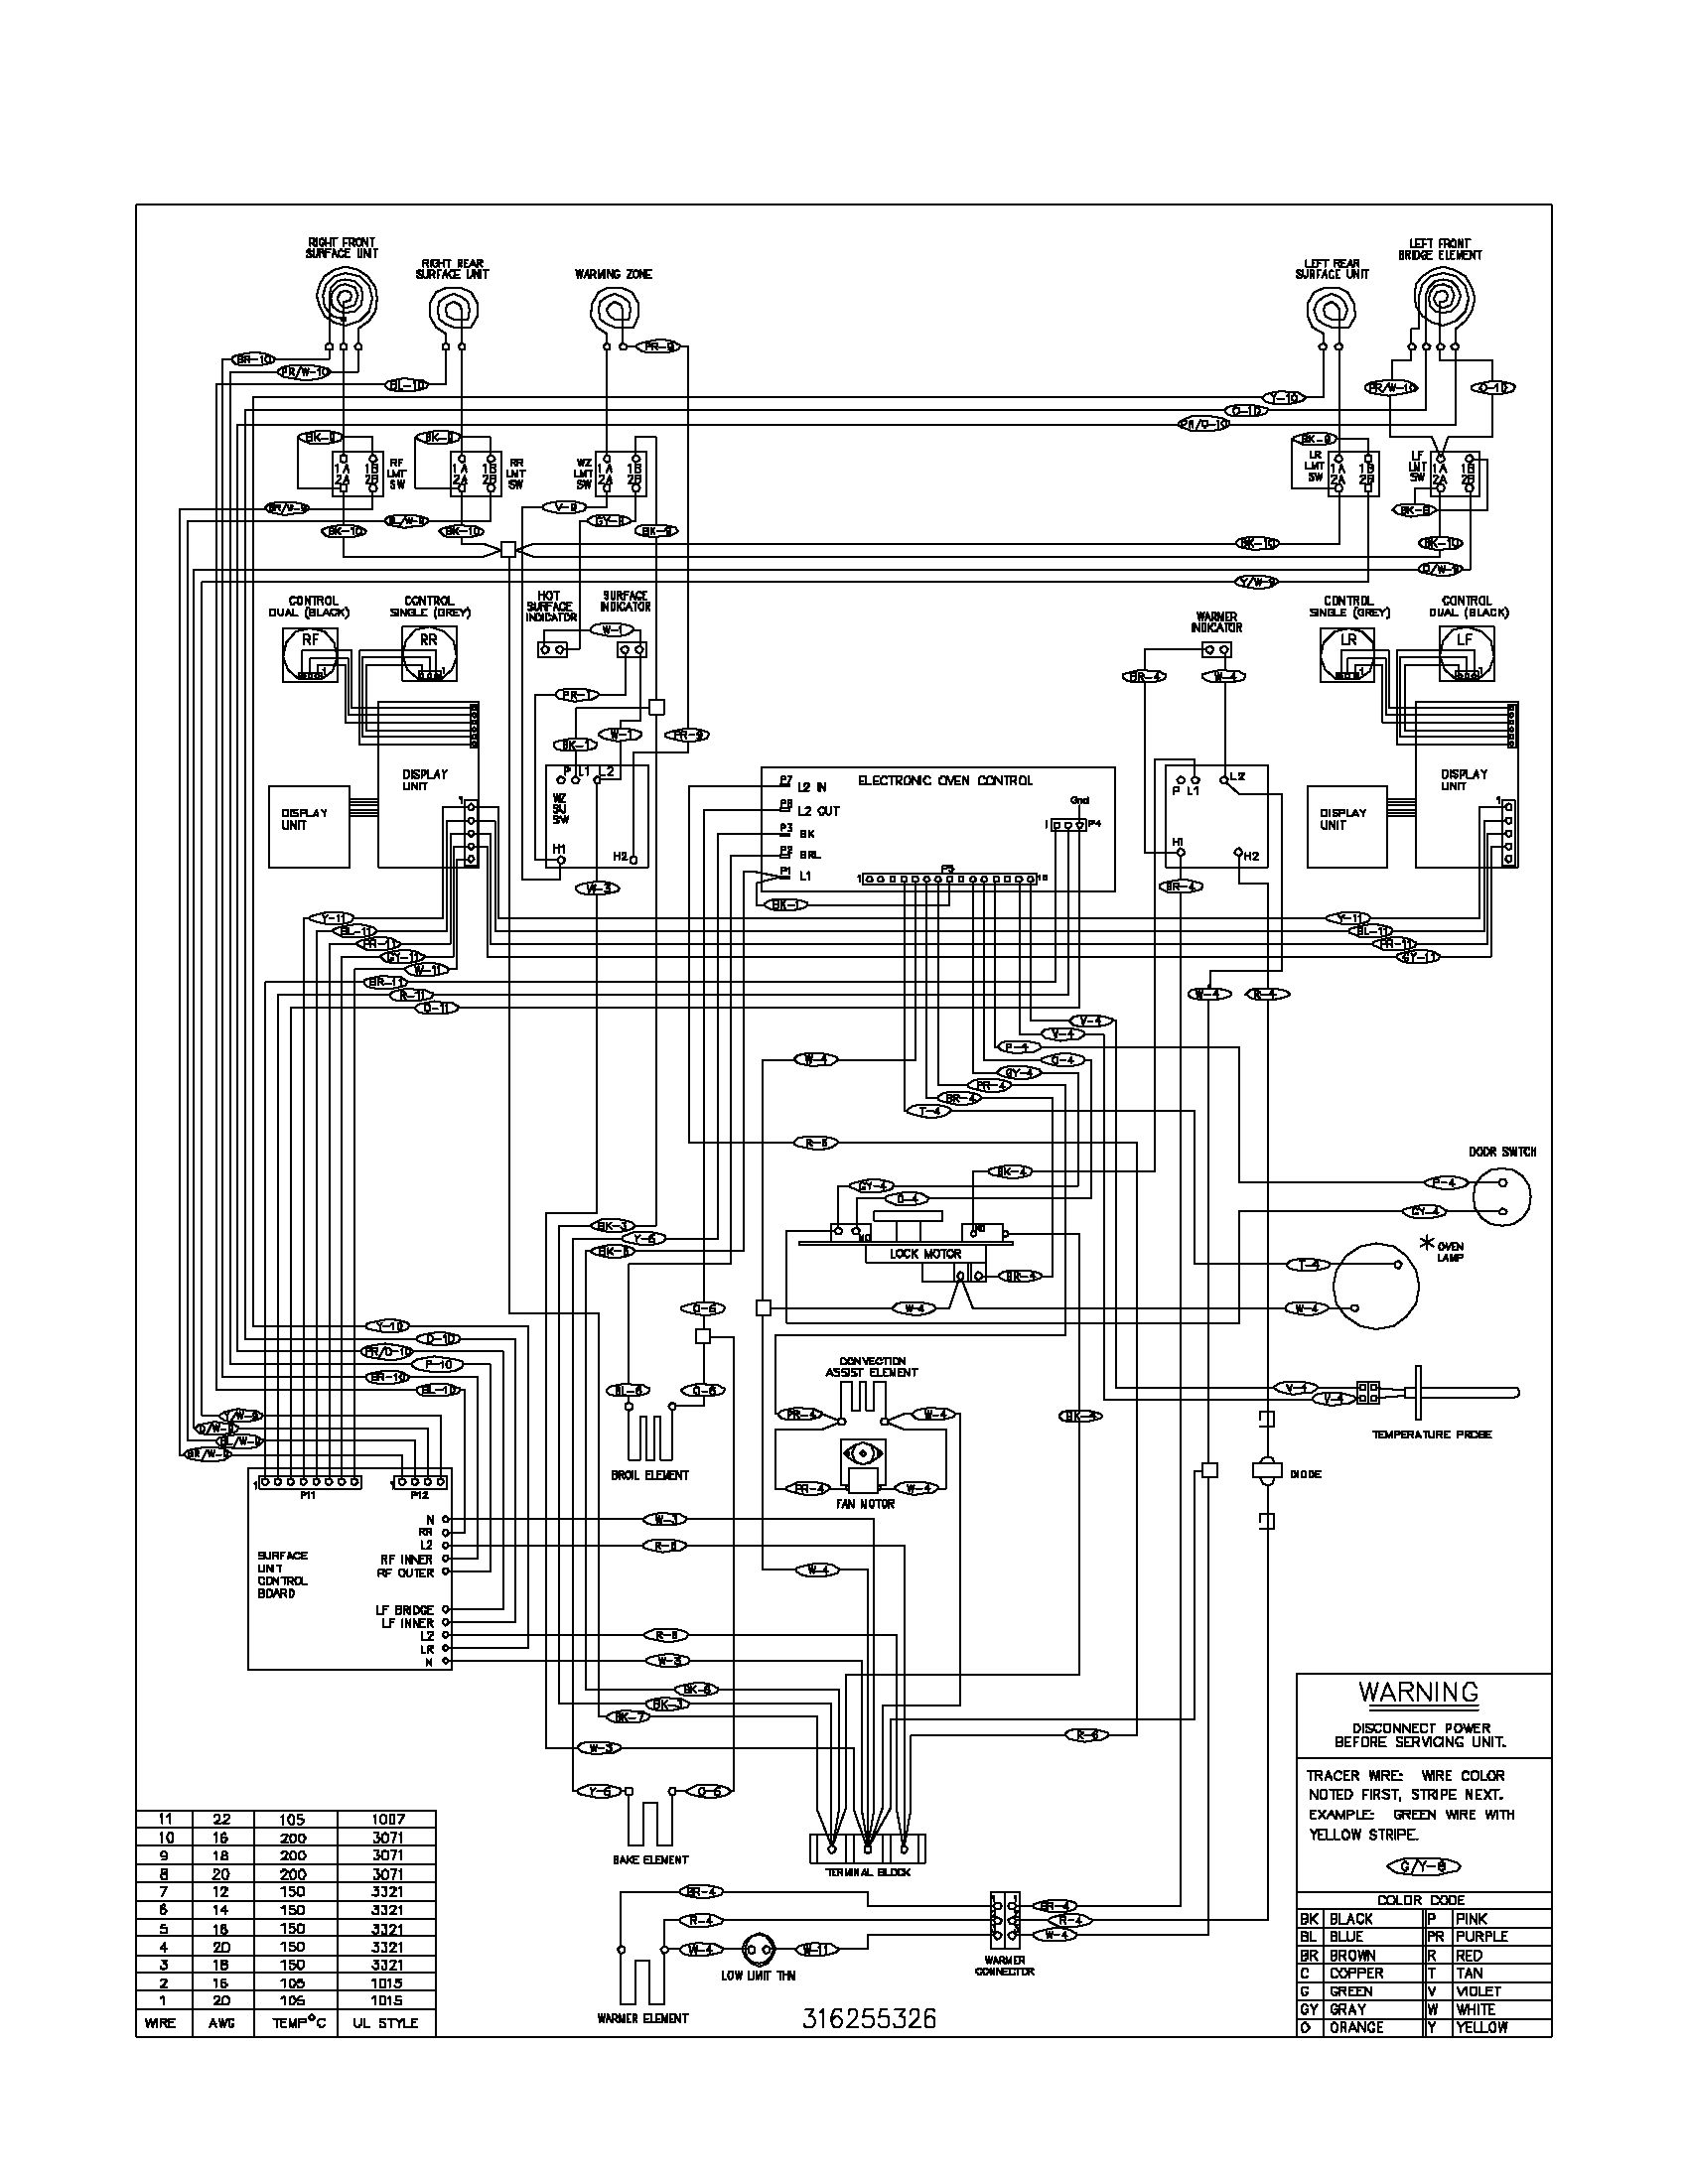 furnace electrical wiring diagram